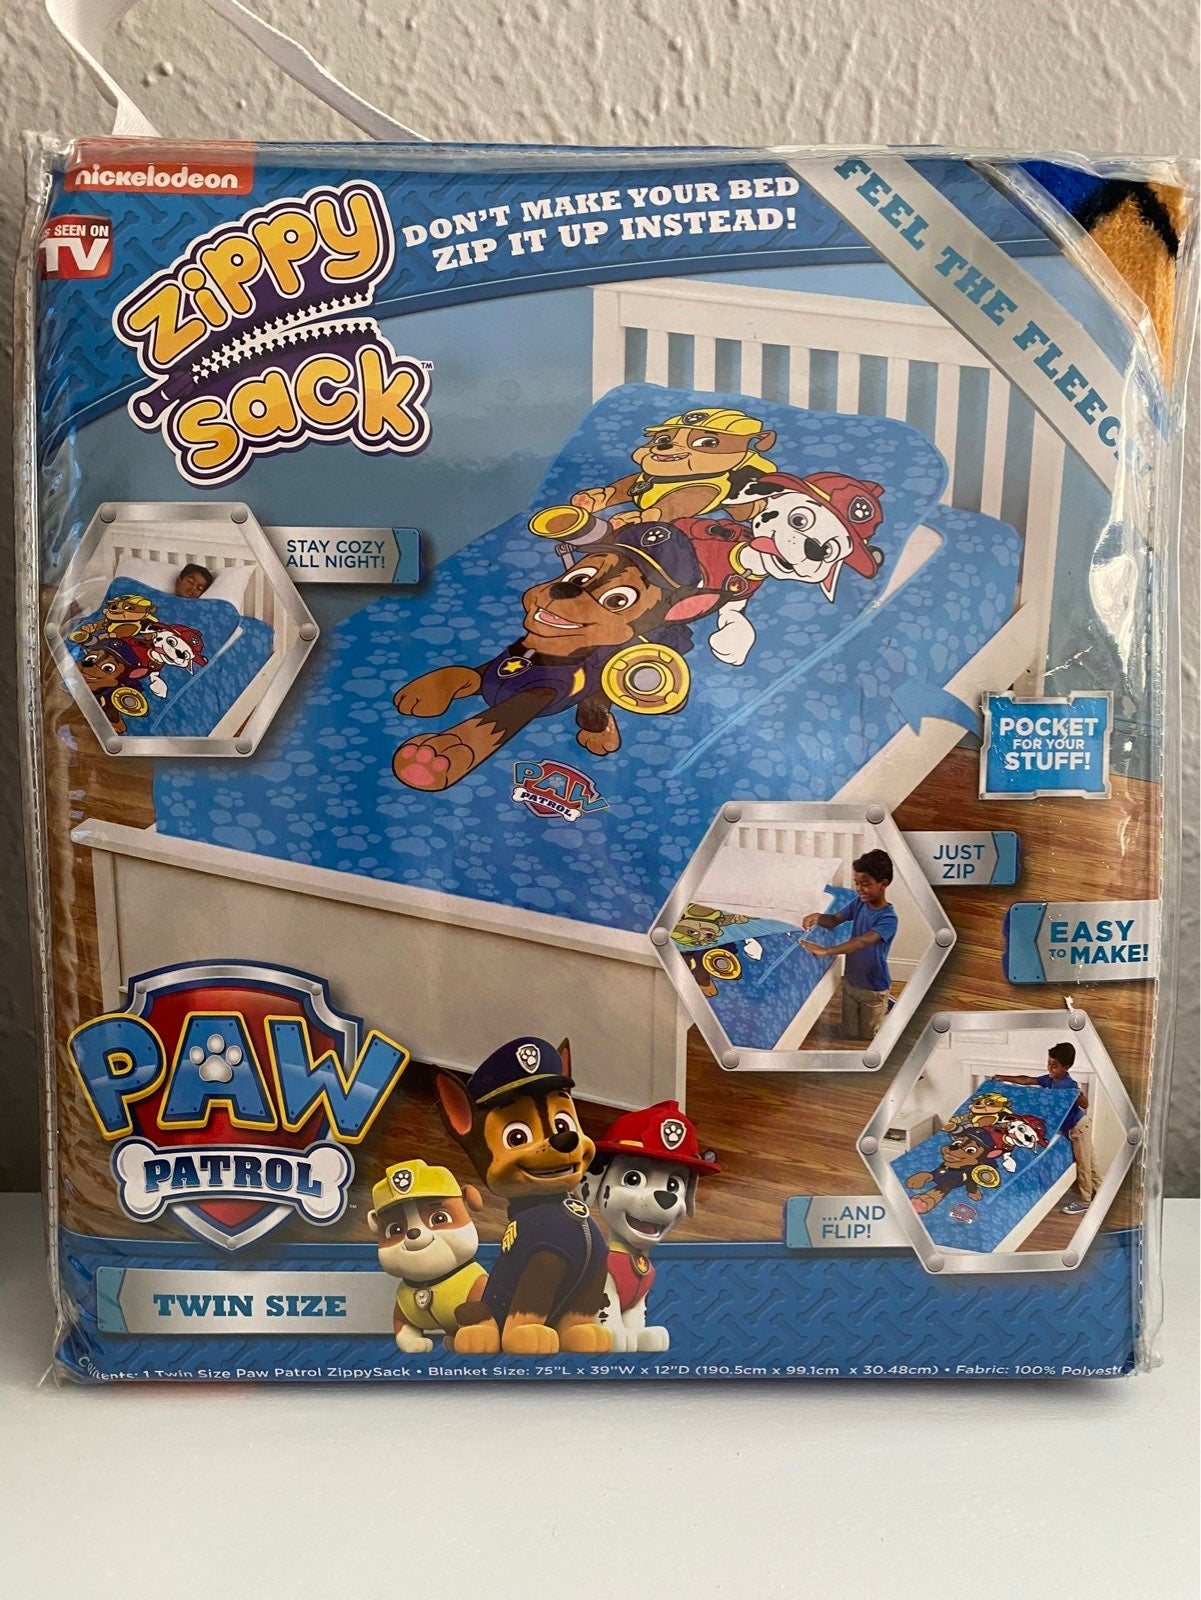 Paw Patrol Twin Size Zippy Sack